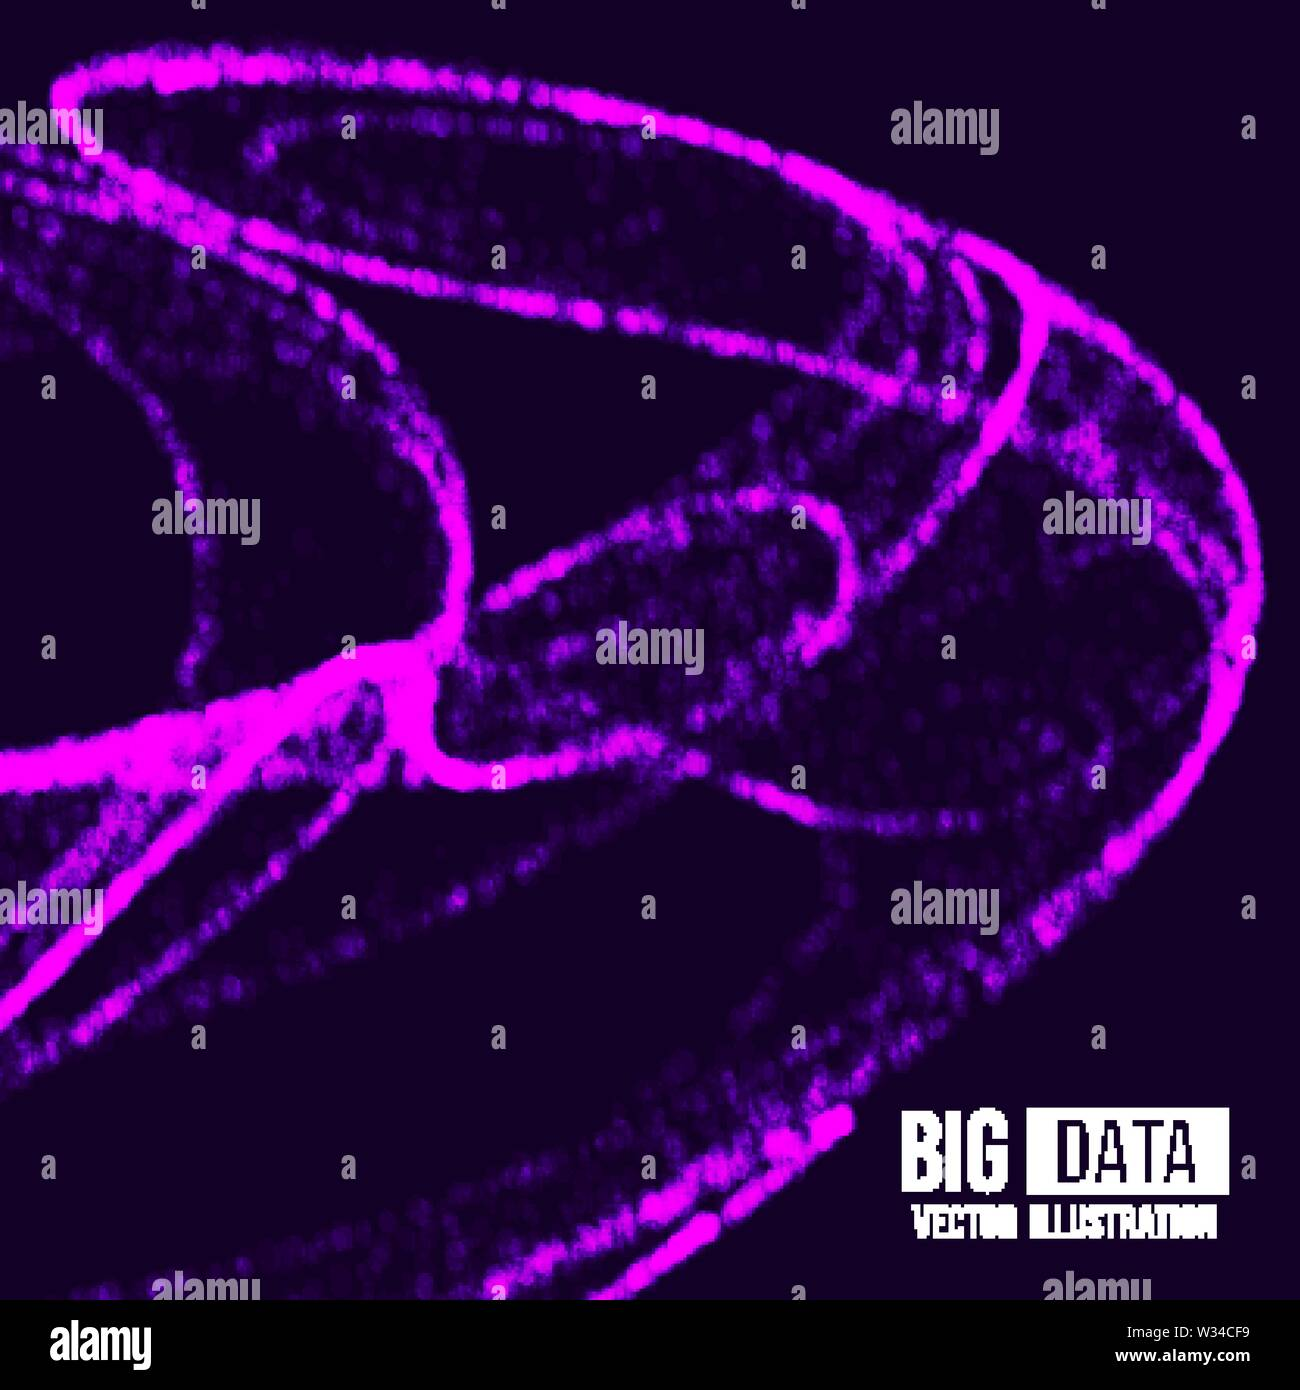 Visual Analytics for Big Data. Vector illustration. Dynamic visualizations with connecting dots and low poly shape. Legacy Data and Streaming Data. - Stock Image